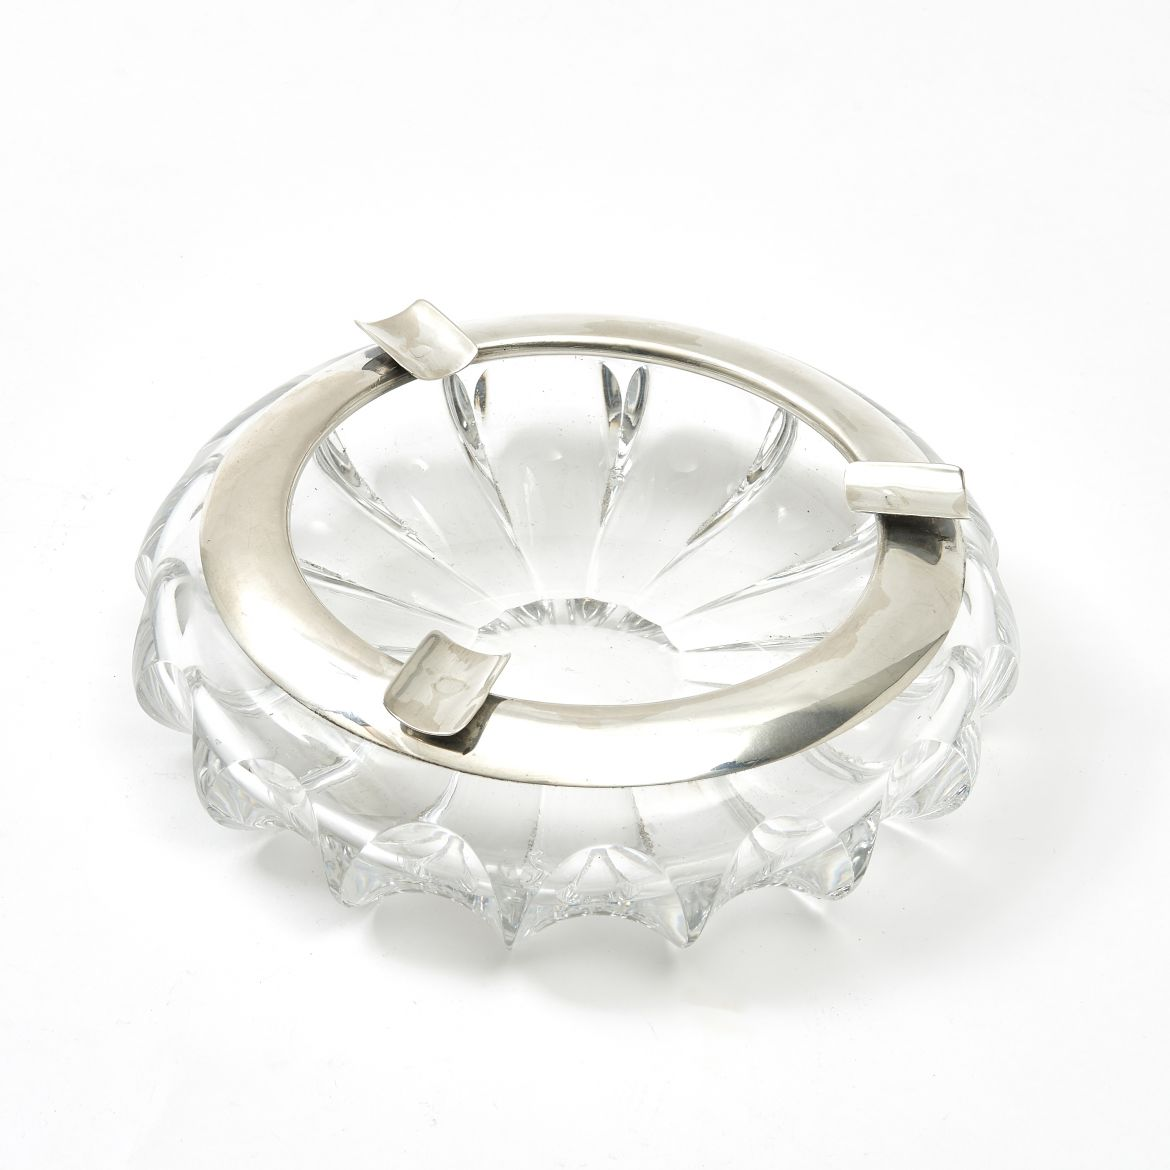 Large German Silver and Crystal Ashtray